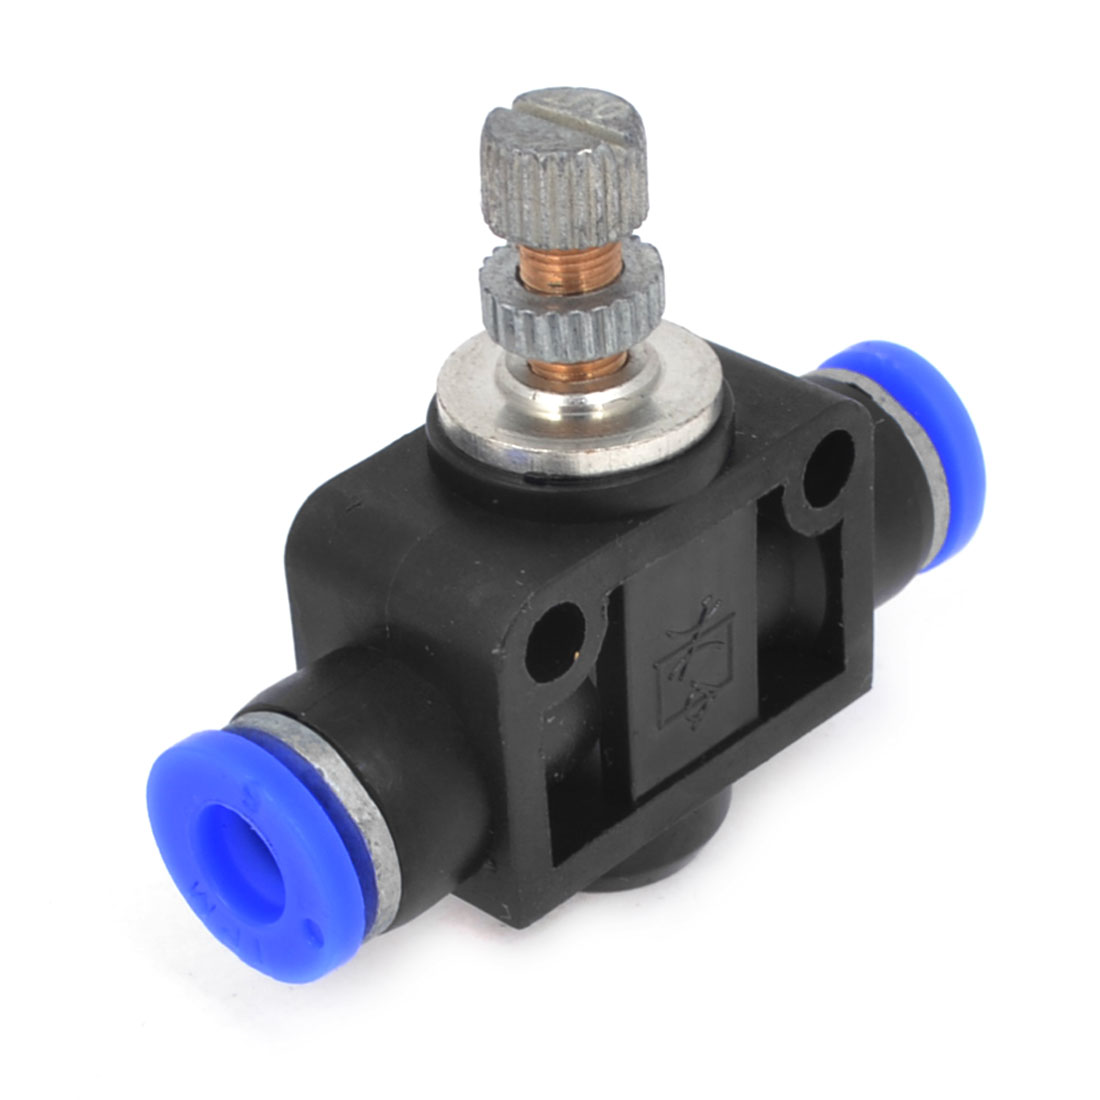 6mm to 6mm Push In Speed Controller Pneumatic Air Valve